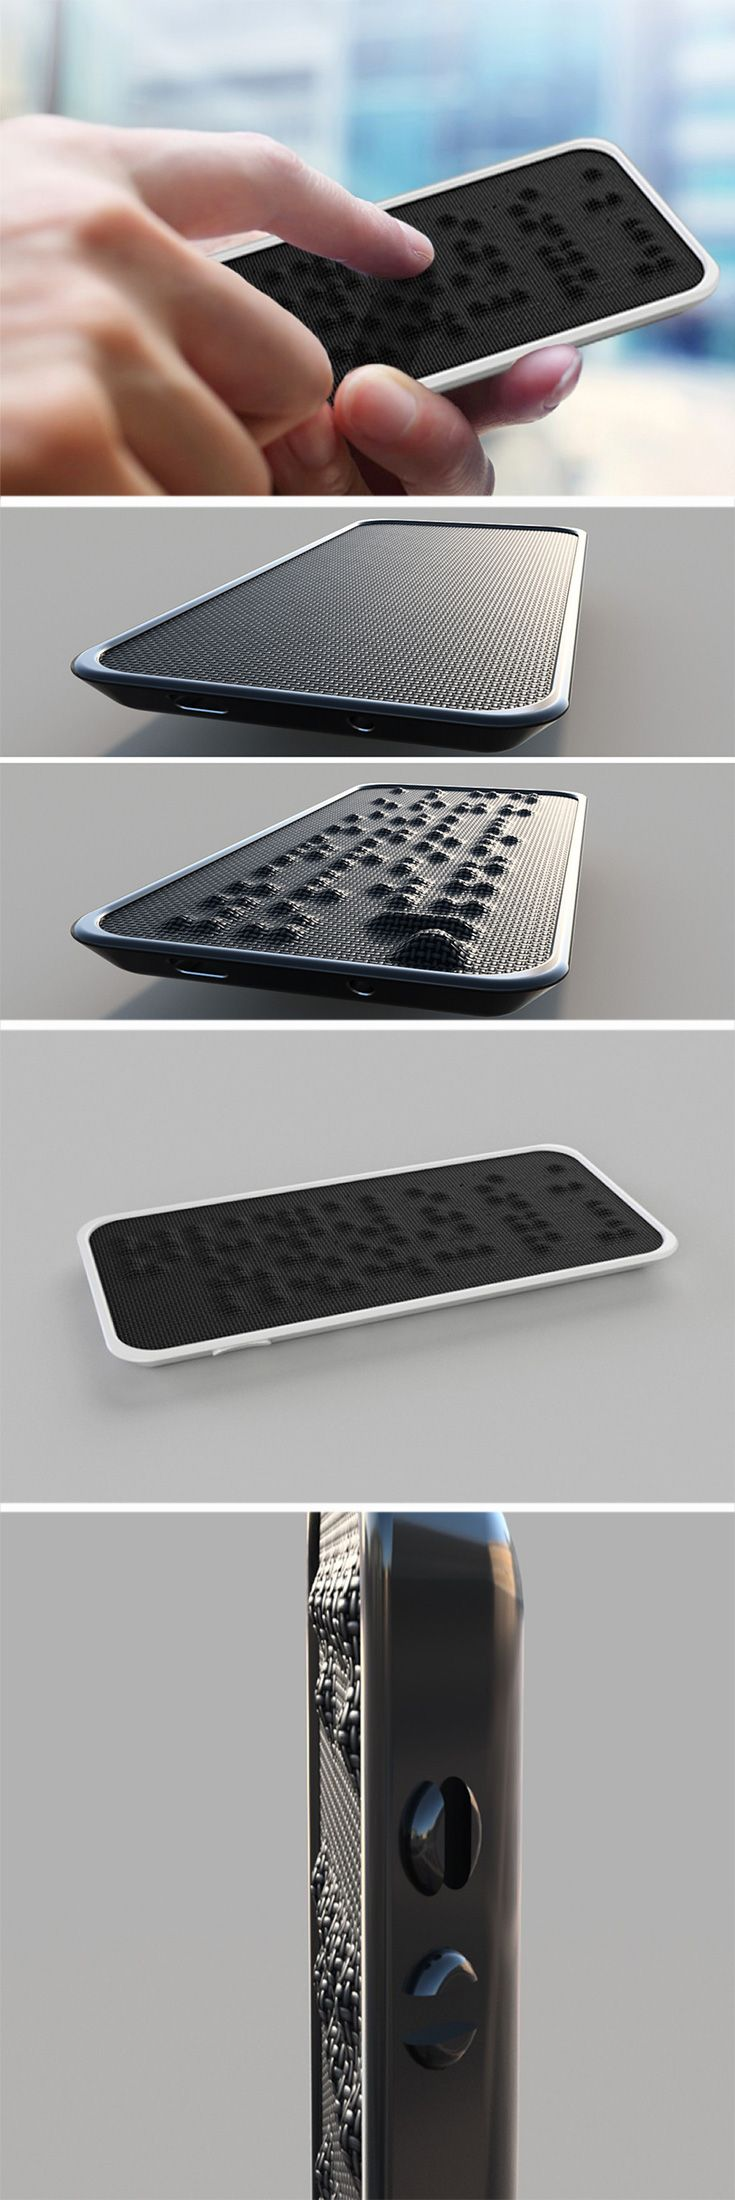 Touchscreens are probably the WORST interface for the visually impaired, that is why the Textura brings a screen replacement surface that is made for braille, along with a classy, sleek design to the phone.